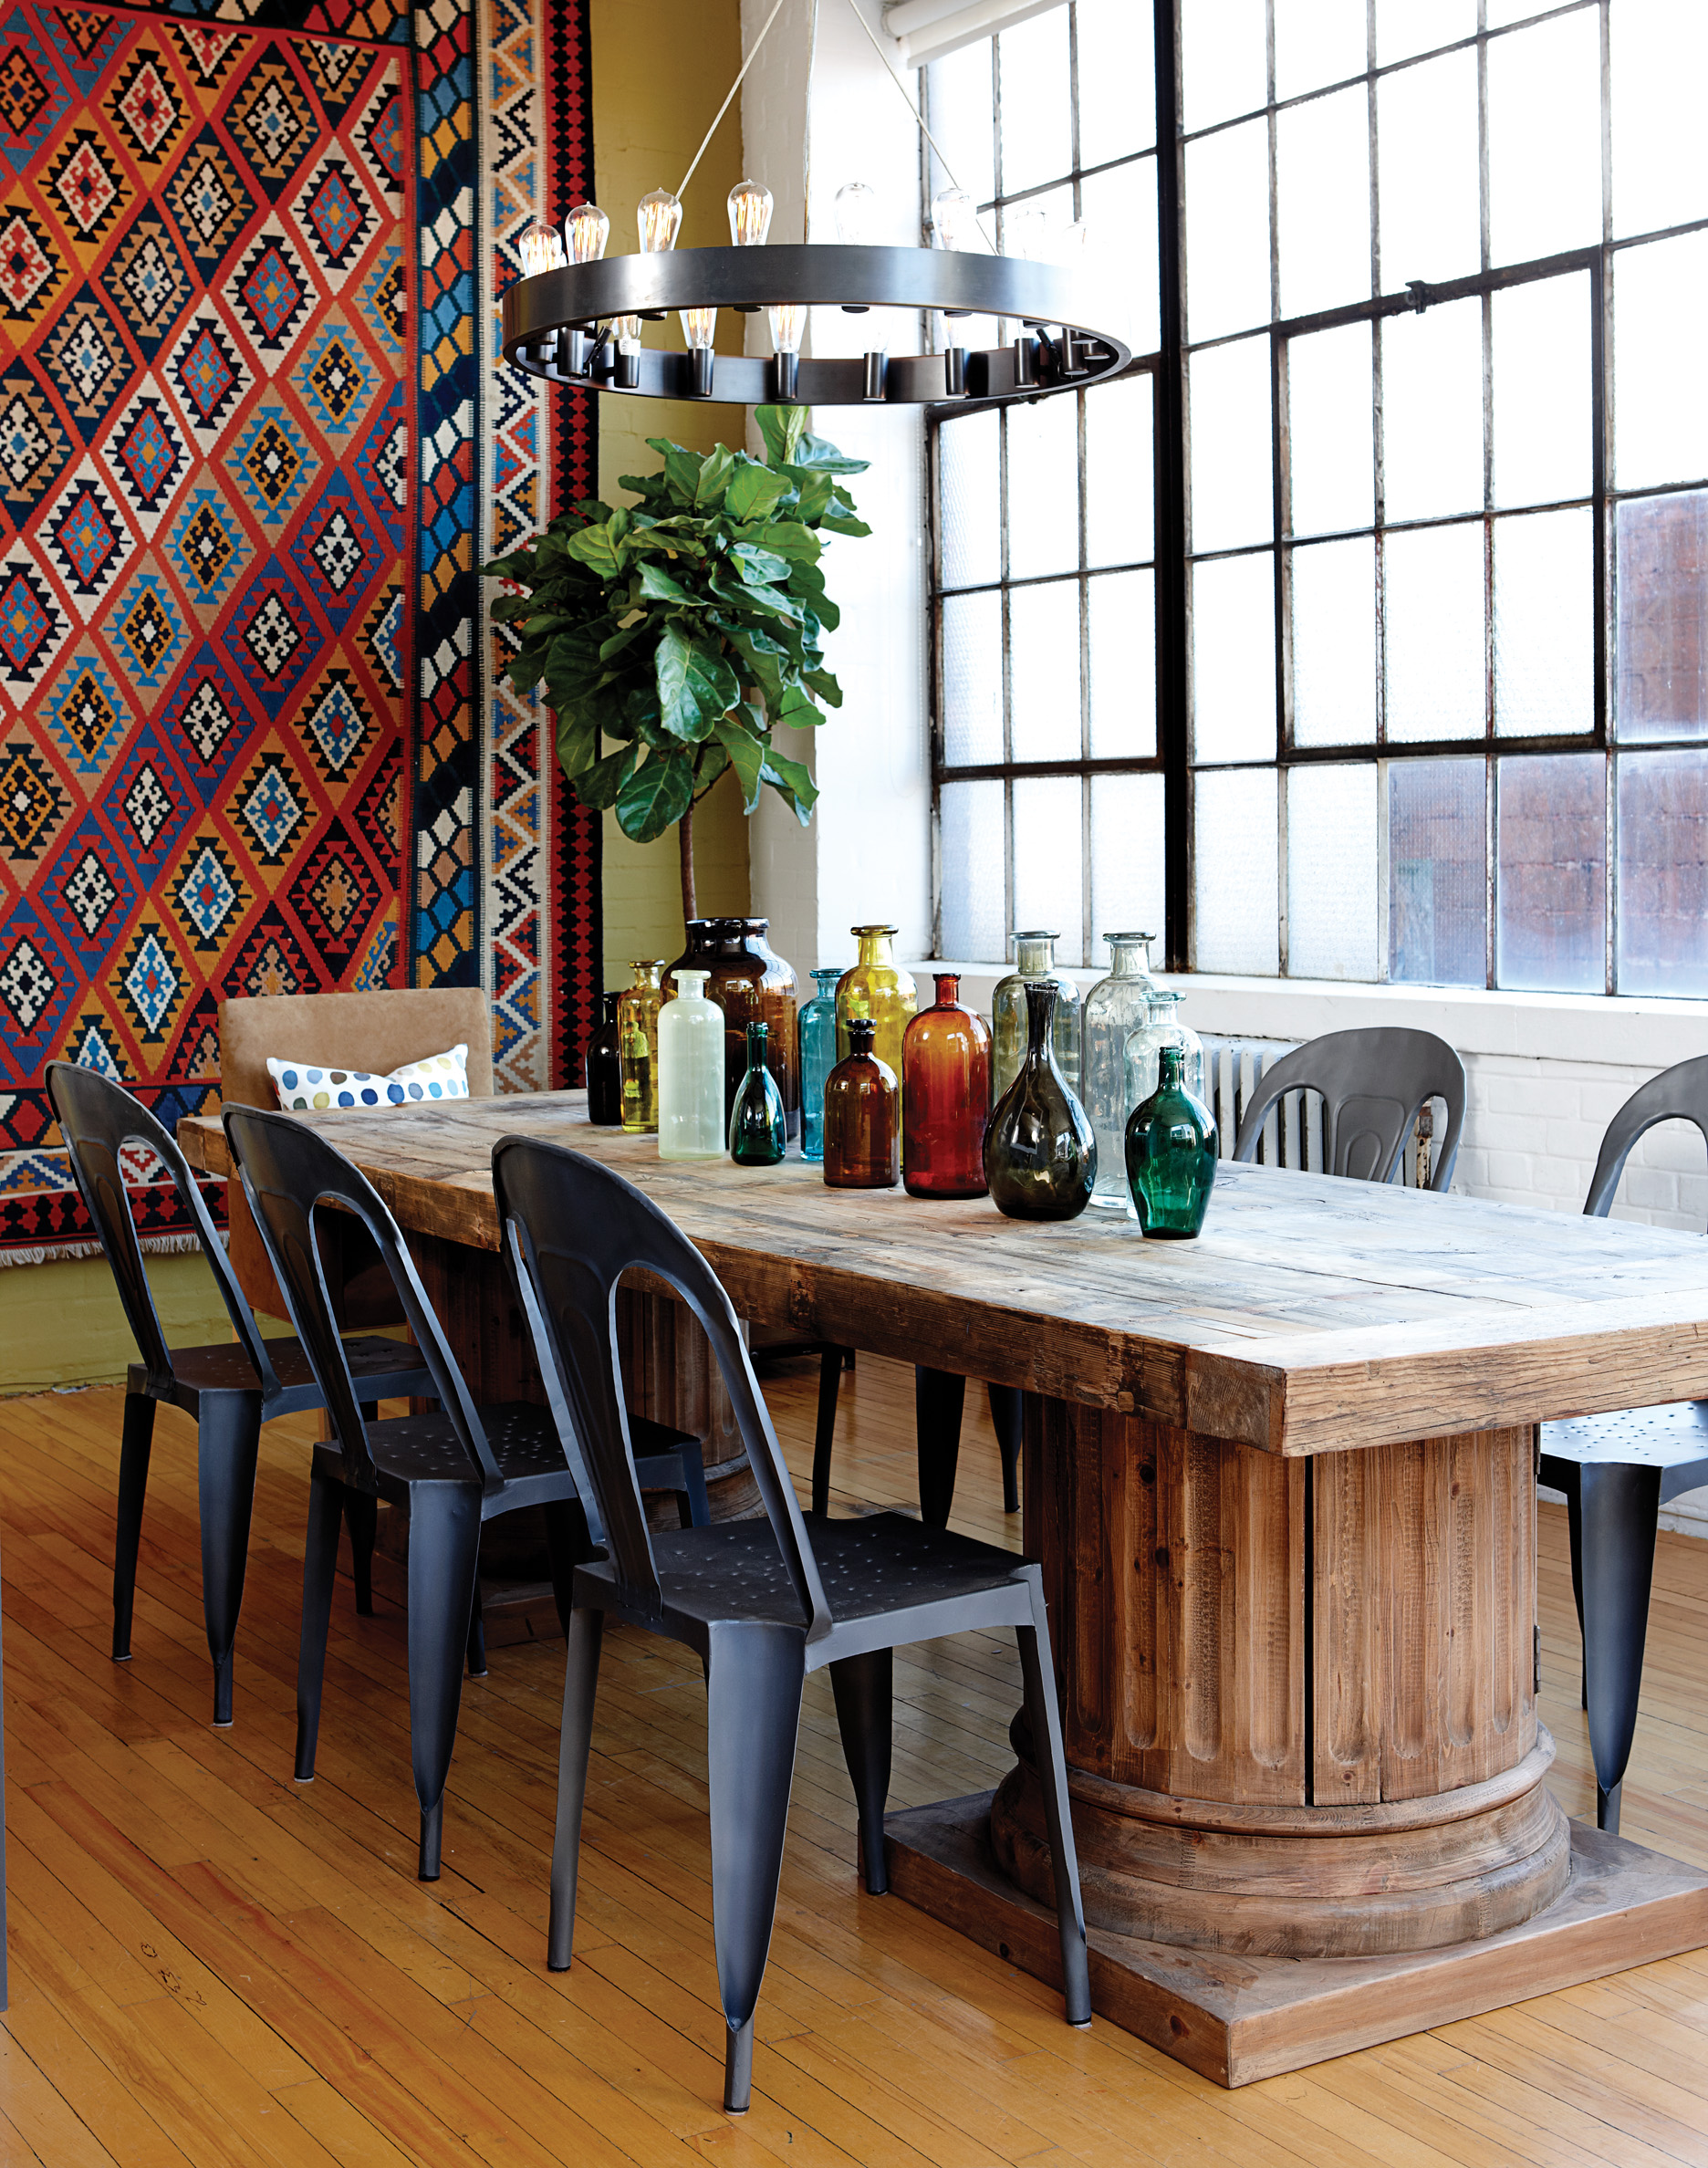 Dining room, glass bottles on table, patterned wall hanging, Jan 13, p62